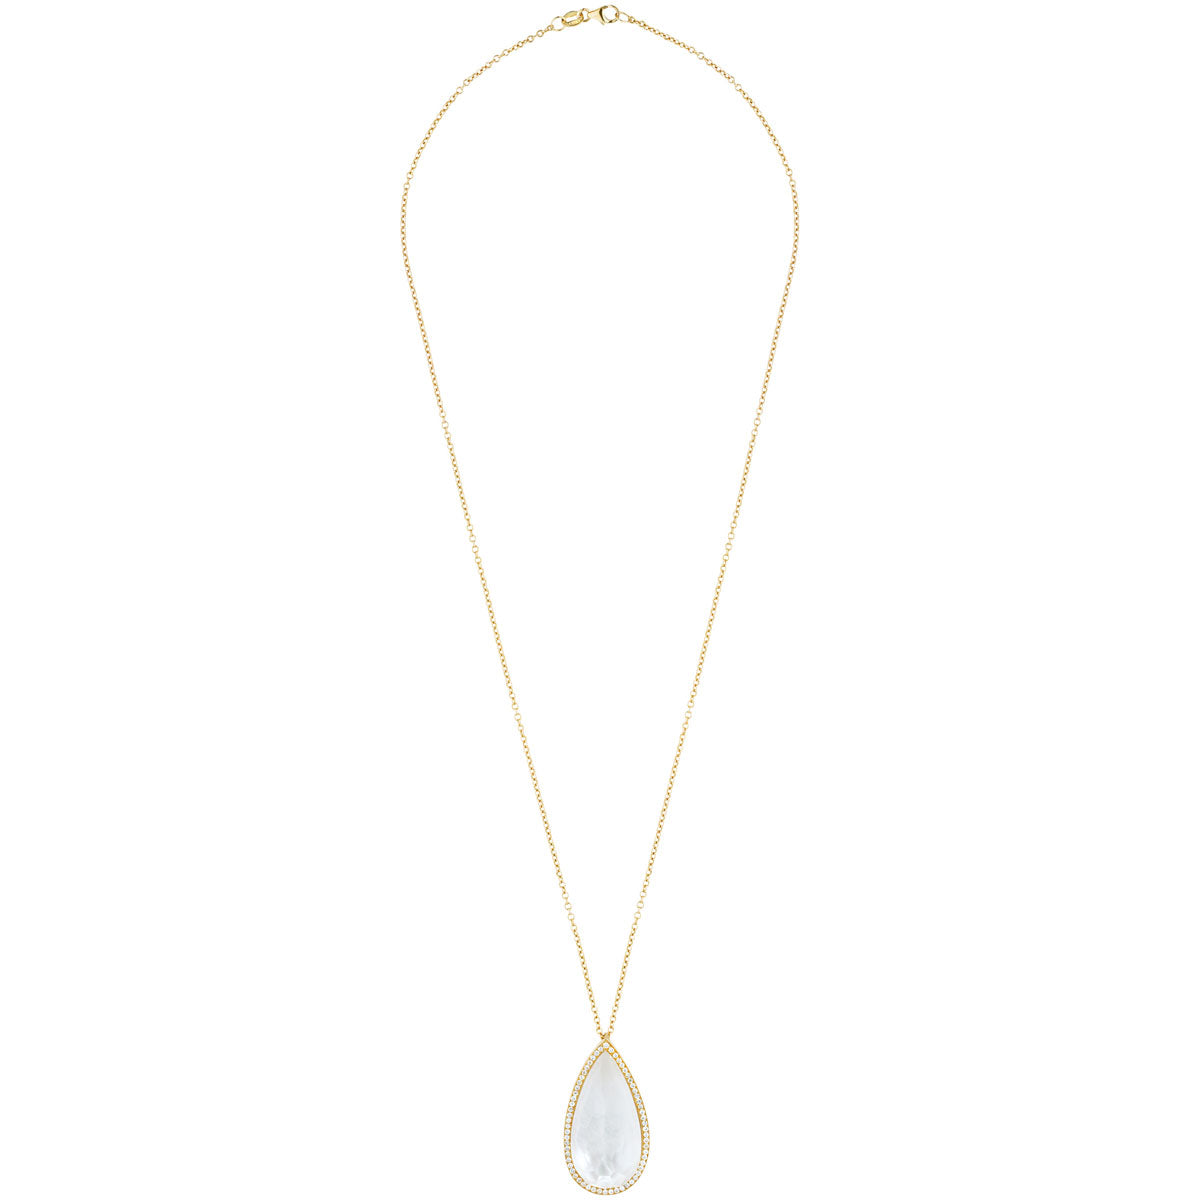 Oceanid 18 kt Gold Pendant with Diamonds, Mother of Pearl and Crystal Quartz